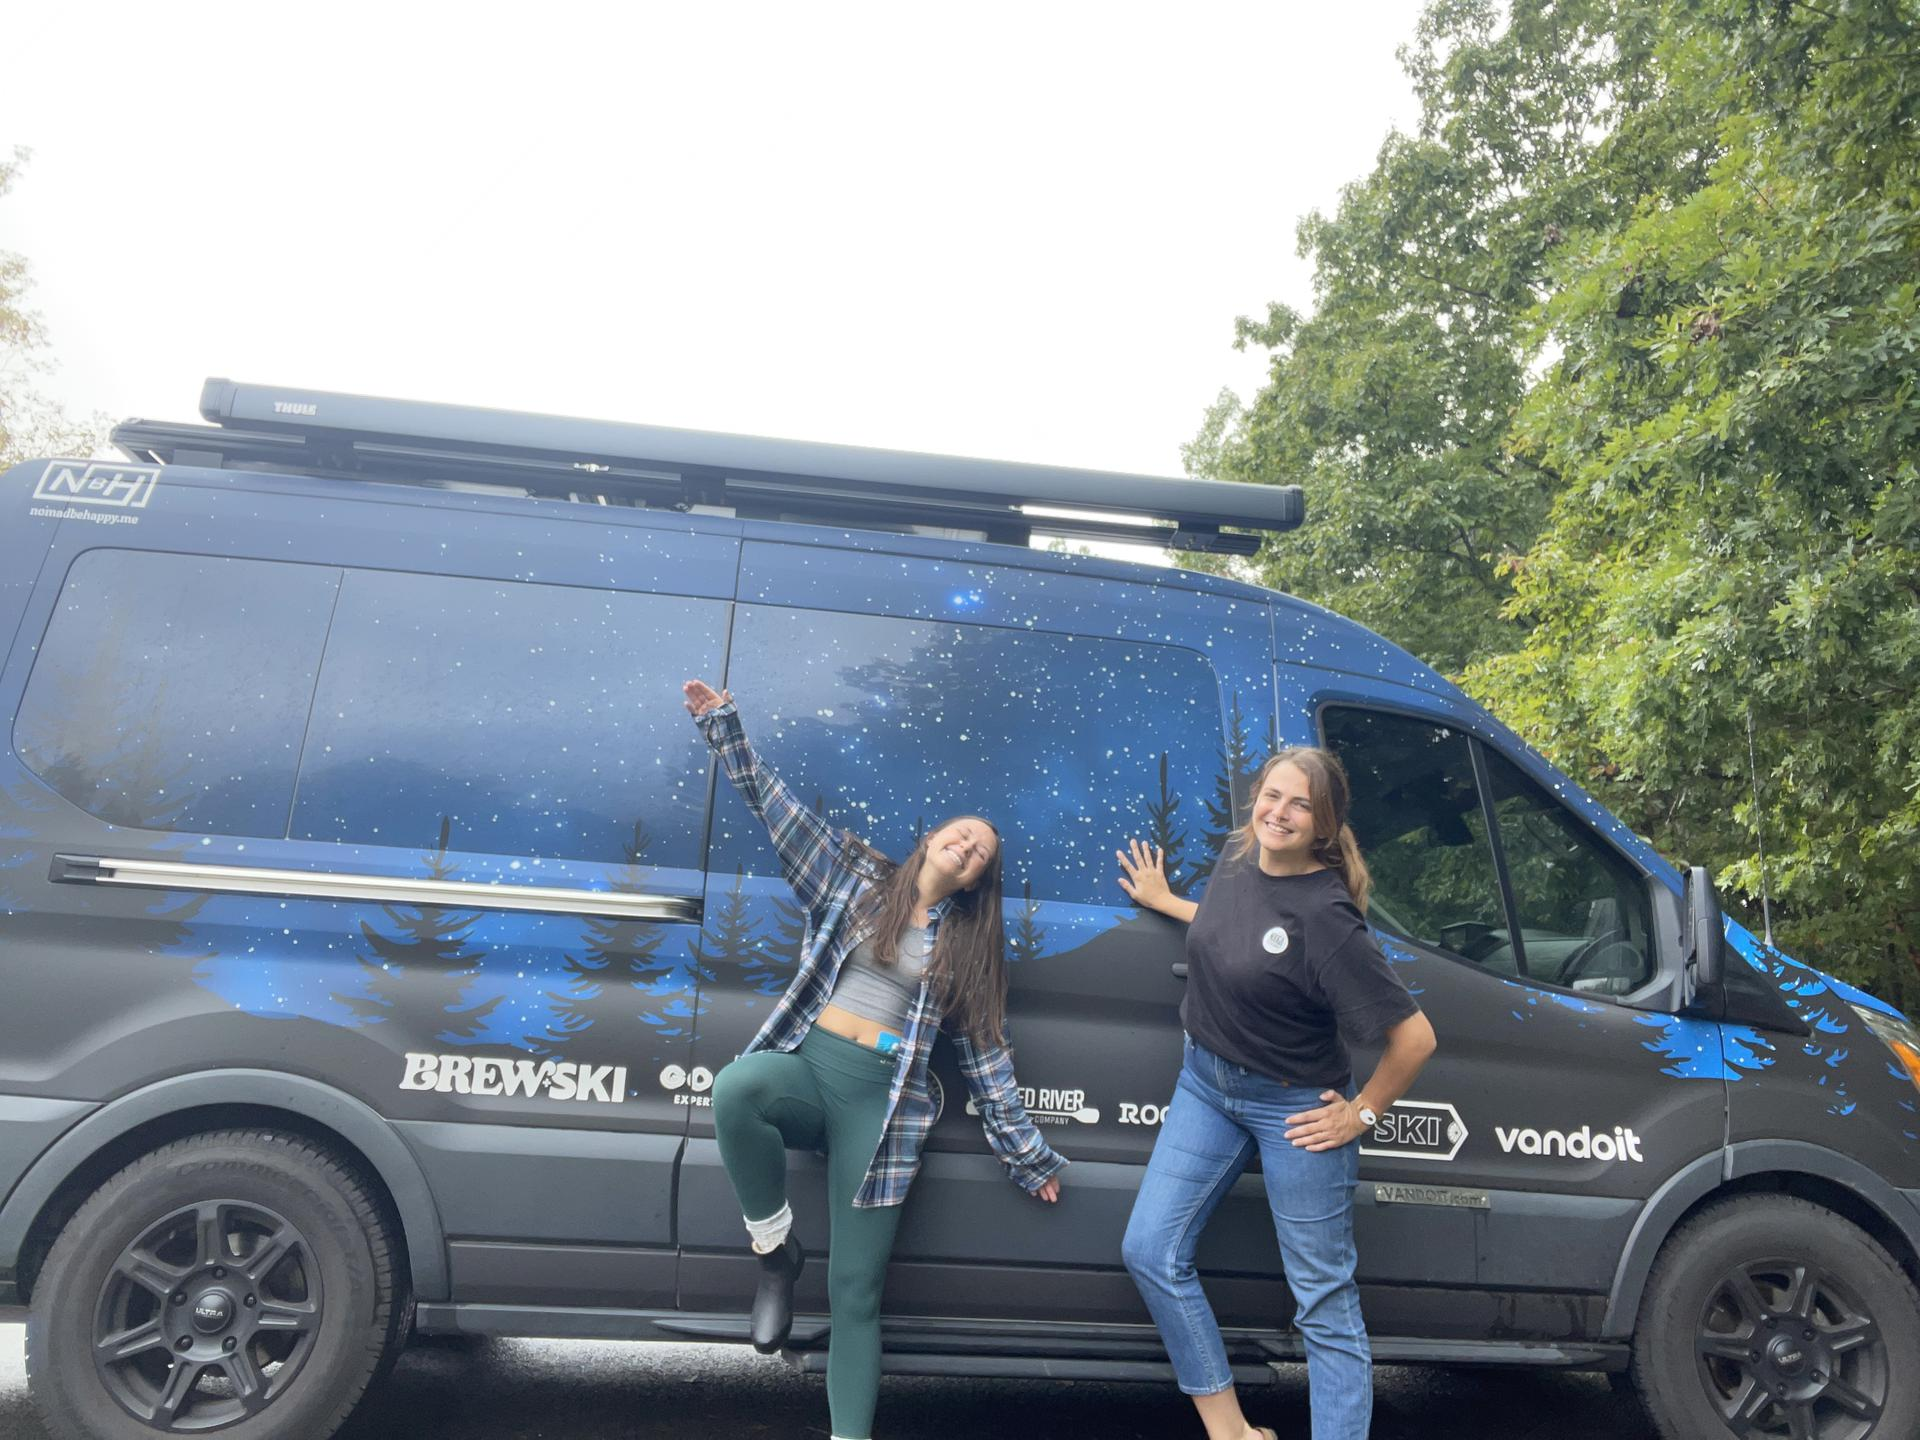 Photo of Trista and Brianna standing in front of a van that features the image of a night sky with stars and dark trees.